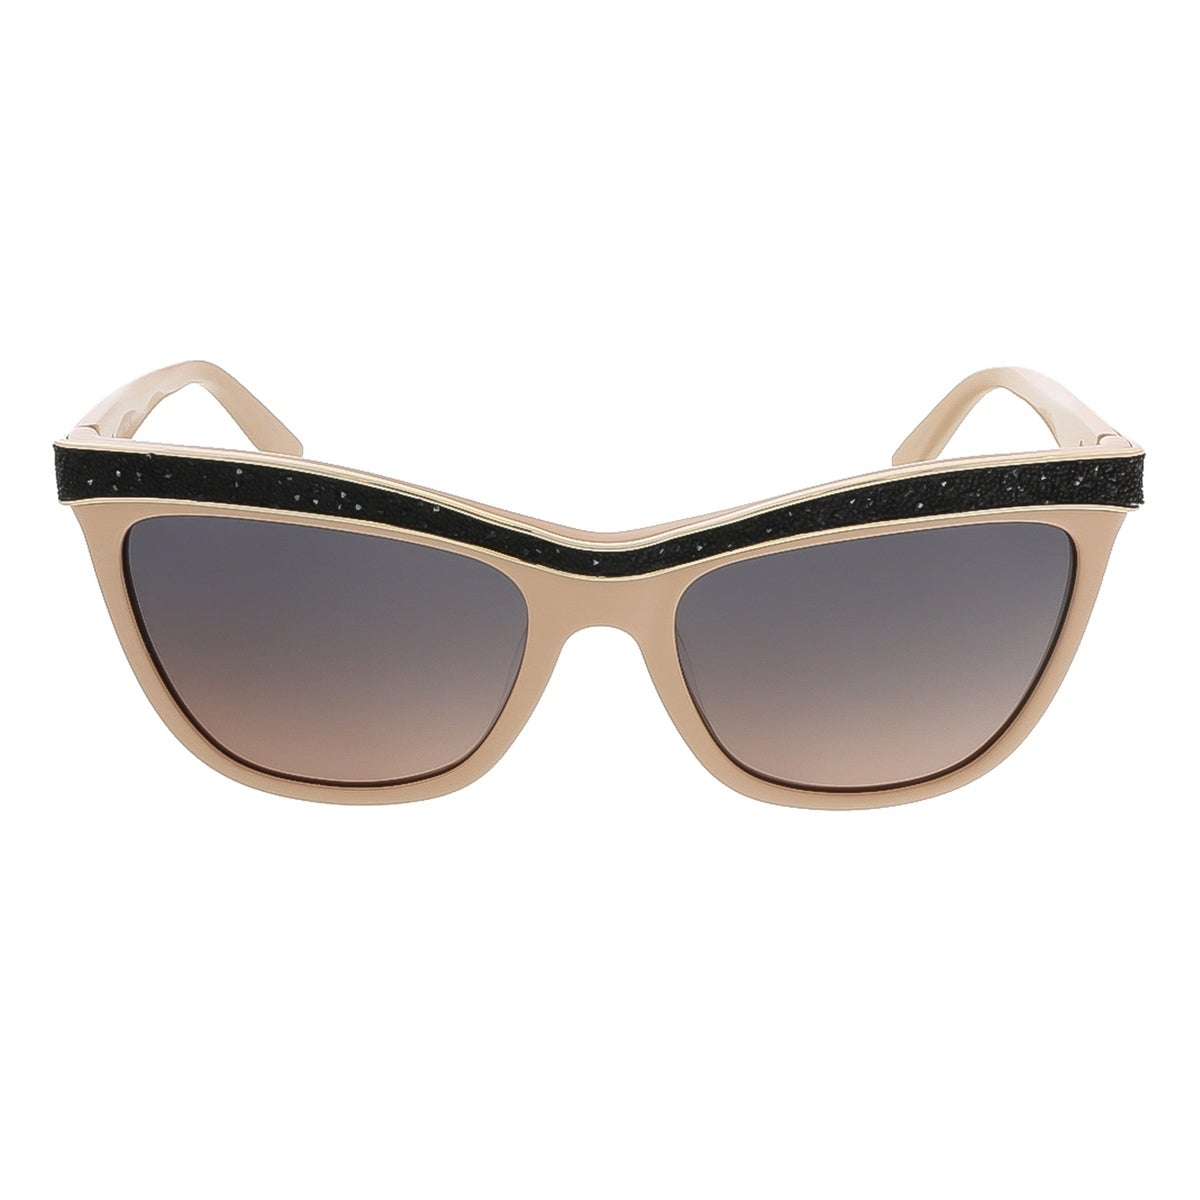 8818aad55c1 Shop Swarovski SK0075 S 72B Rose Pale Gold Butterfly sunglasses - 55-17-135  - On Sale - Free Shipping Today - Overstock - 13401947